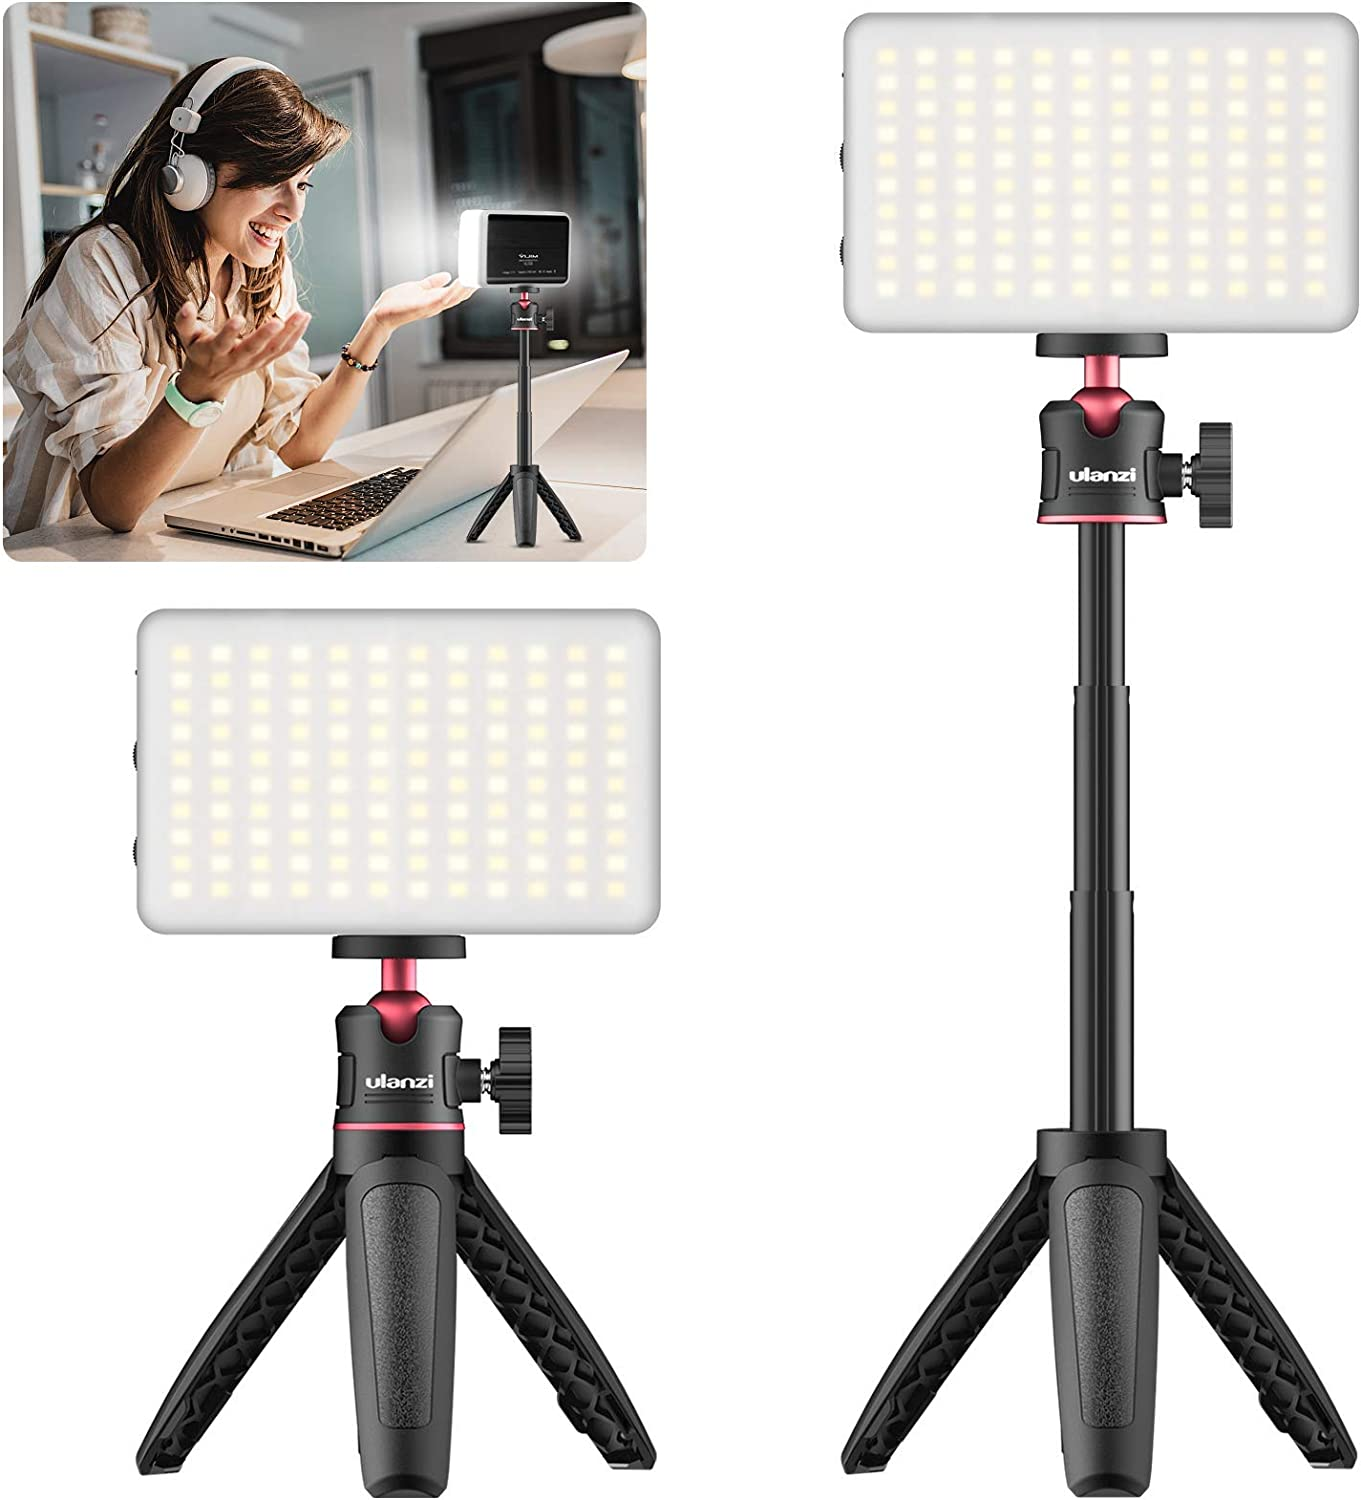 VIJIM 1 Pack Rechargeable Portable Photography Light with Mini Adjustable Tripod Stand Studying Livestreaming Office Desk Lamp for Remote Working Zoom Calling Video Conference Lighting Kit Black